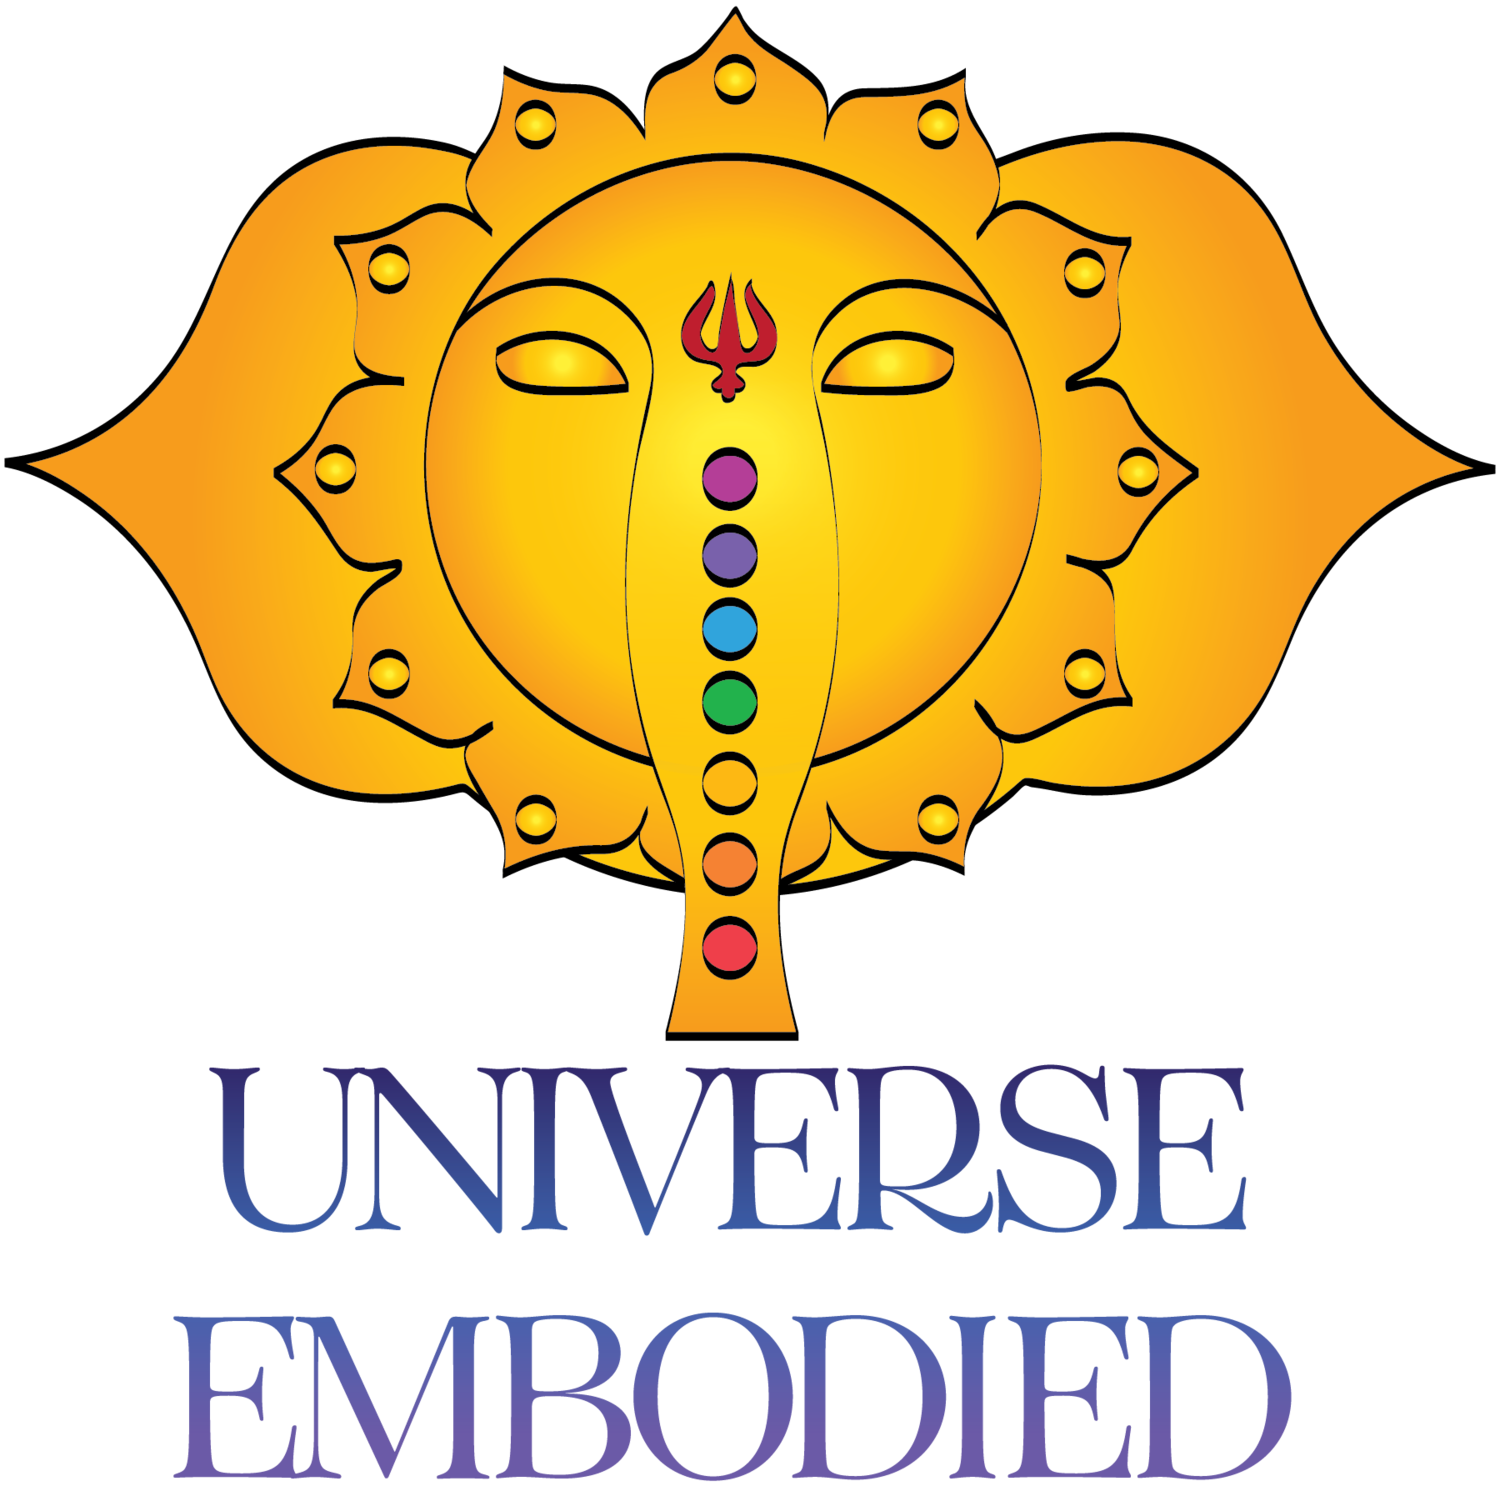 Universe Embodied